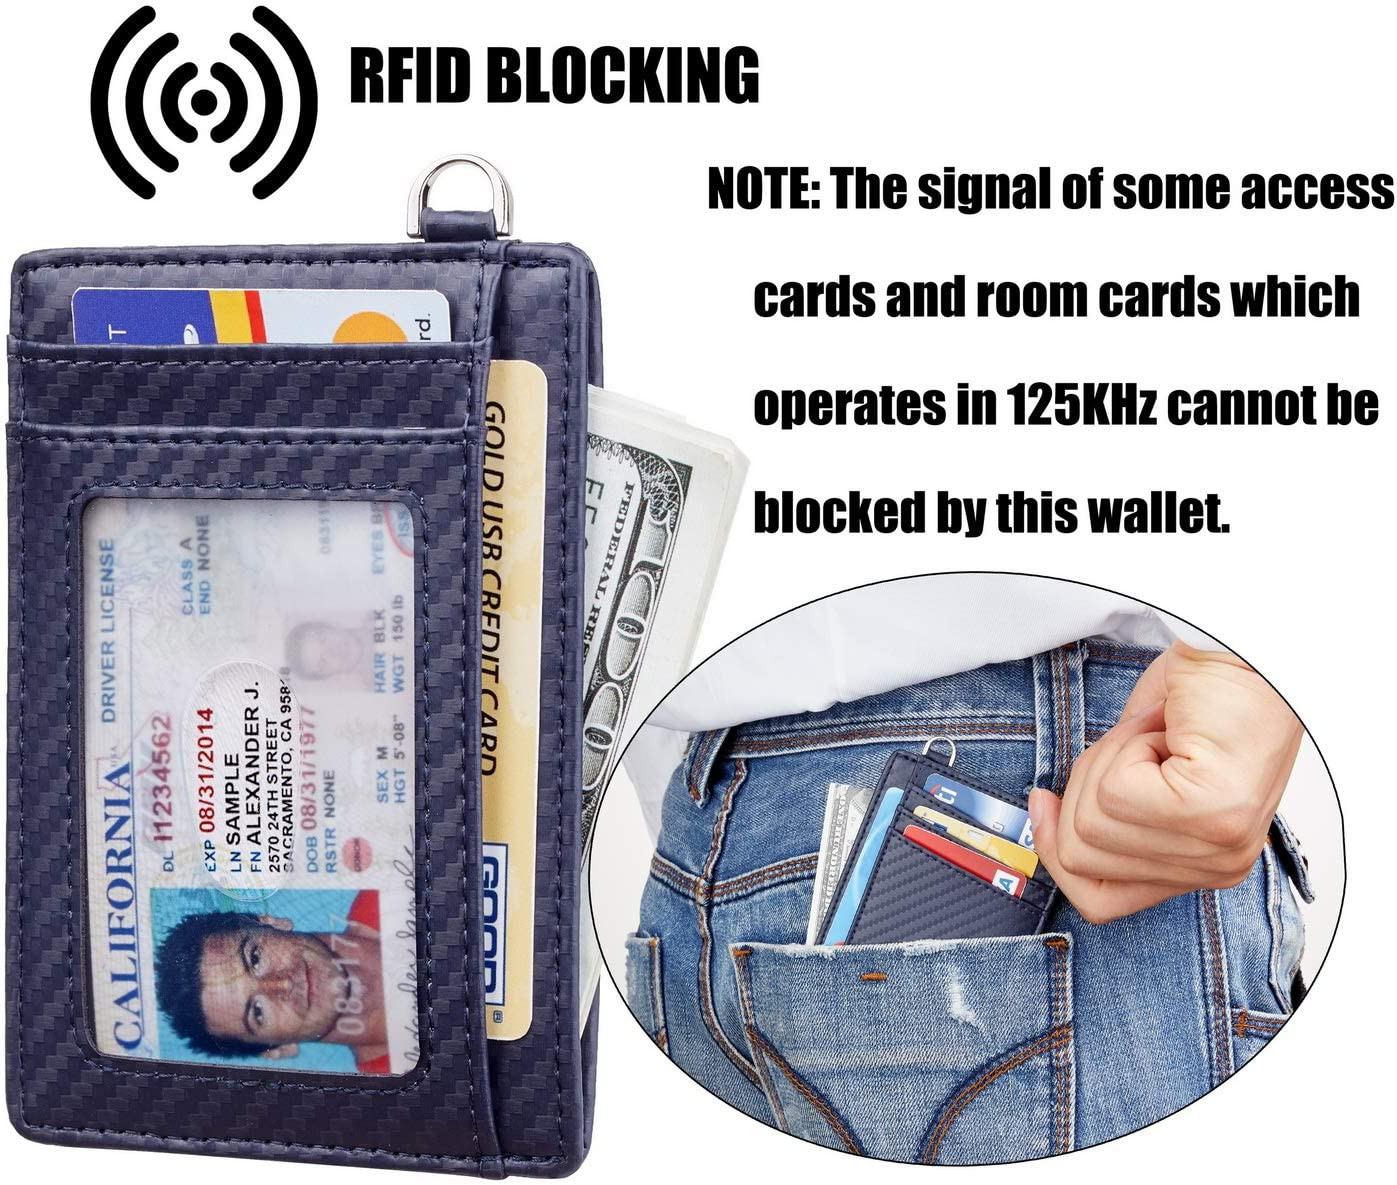 Casmonal Slim Minimalist Front Pocket Wallets RFID Blocking Credit Card Holder for Men /& Women Carbon Fiber Texture Navy Blue